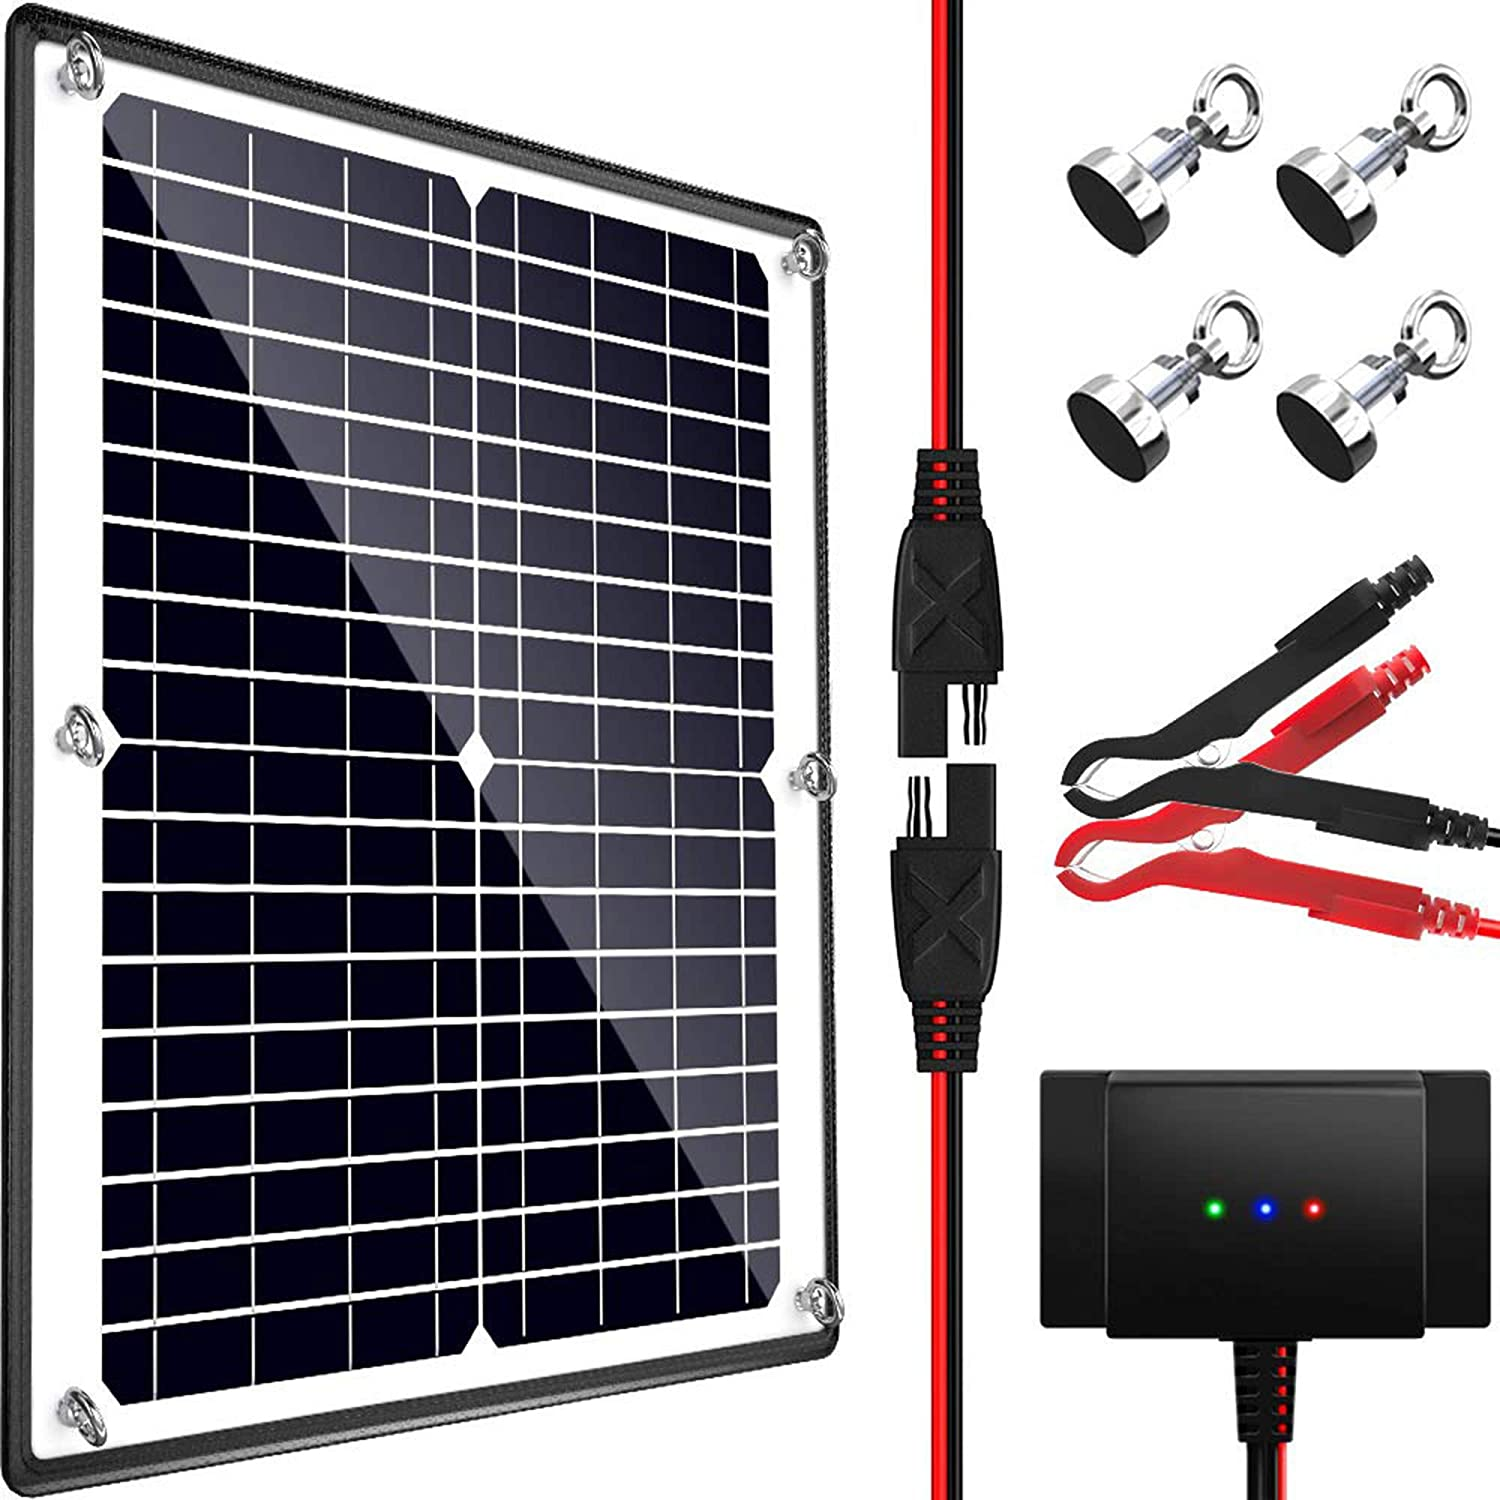 POWOXI Solar Panel, 12V 20W Magnetic Solar Battery Charger Maintainer, Bult-in IntelligentCharge Controller, Waterproof Solar Trickle Charger Alligator Clip for Car RV Motorcycle Marine, etc.